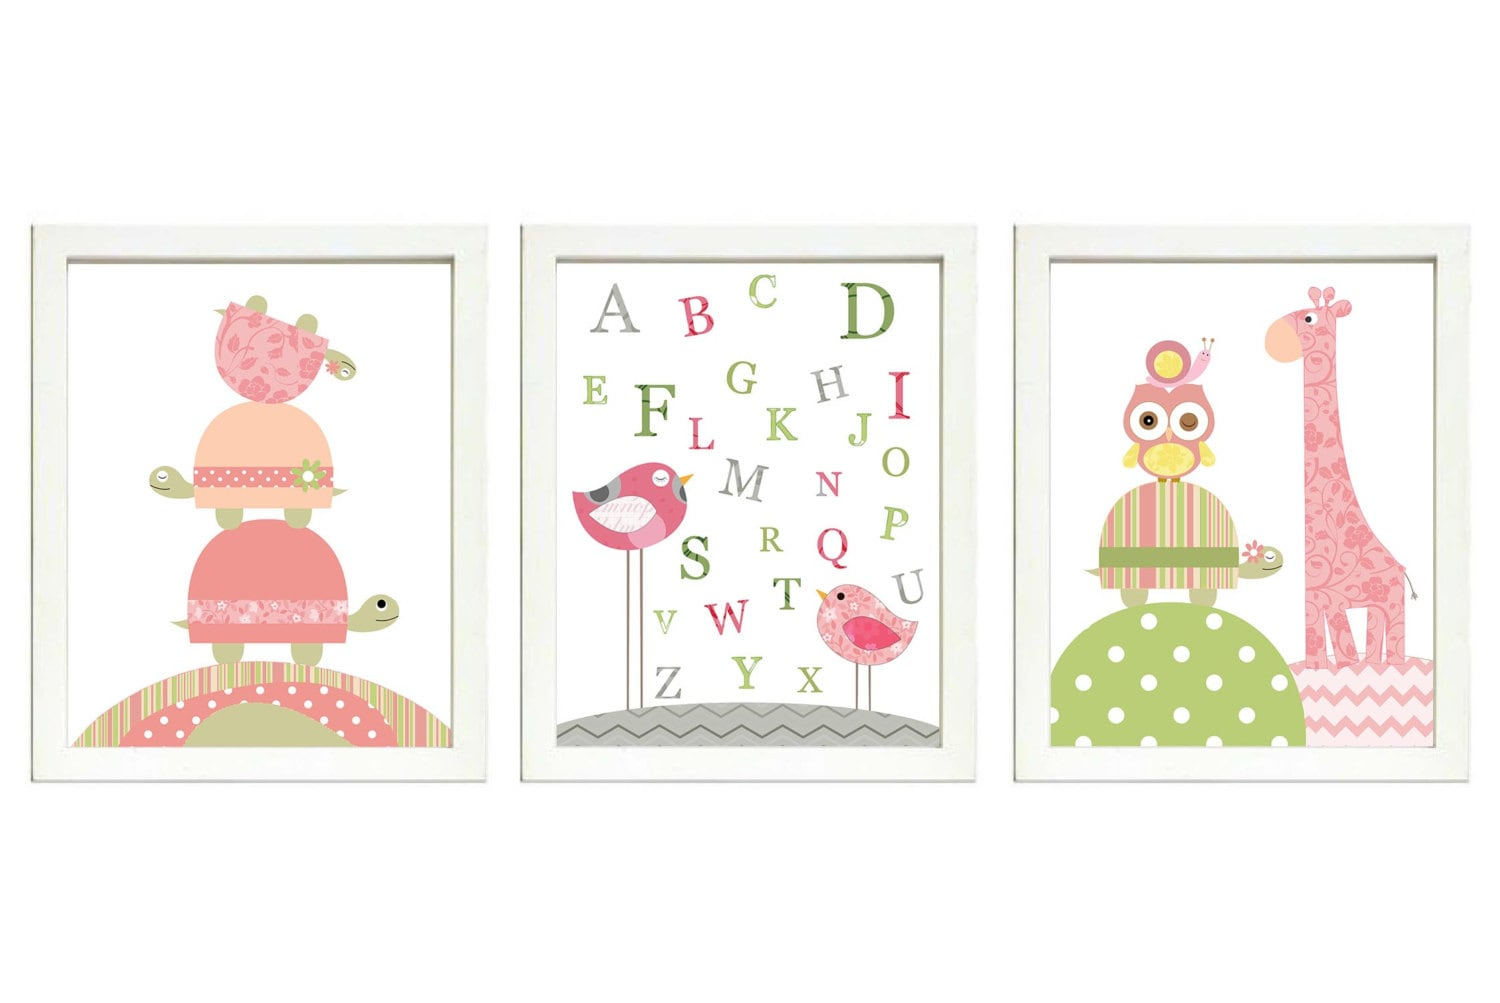 Pink Green Girls Nursery Art Print Set of 3 Bird Turtle Giraffe Snail ABC Alphabet Baby Nursery Prin